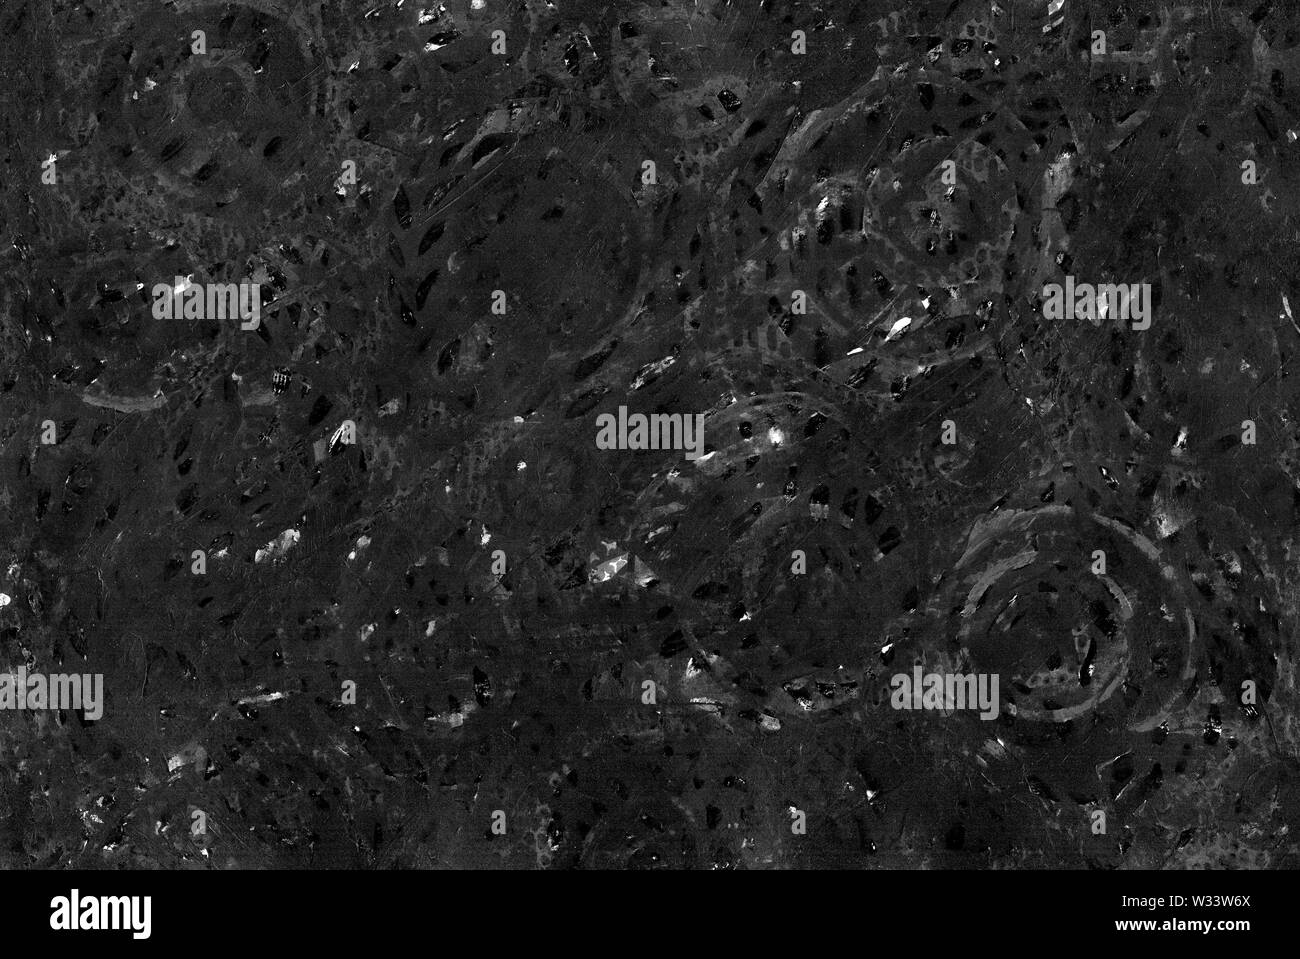 Dark monochrome abstract grunge background. Gray rough texture with scratches, dots, lines, circles, strokes and stains. Hand drawing. Medicine, biolo Stock Photo